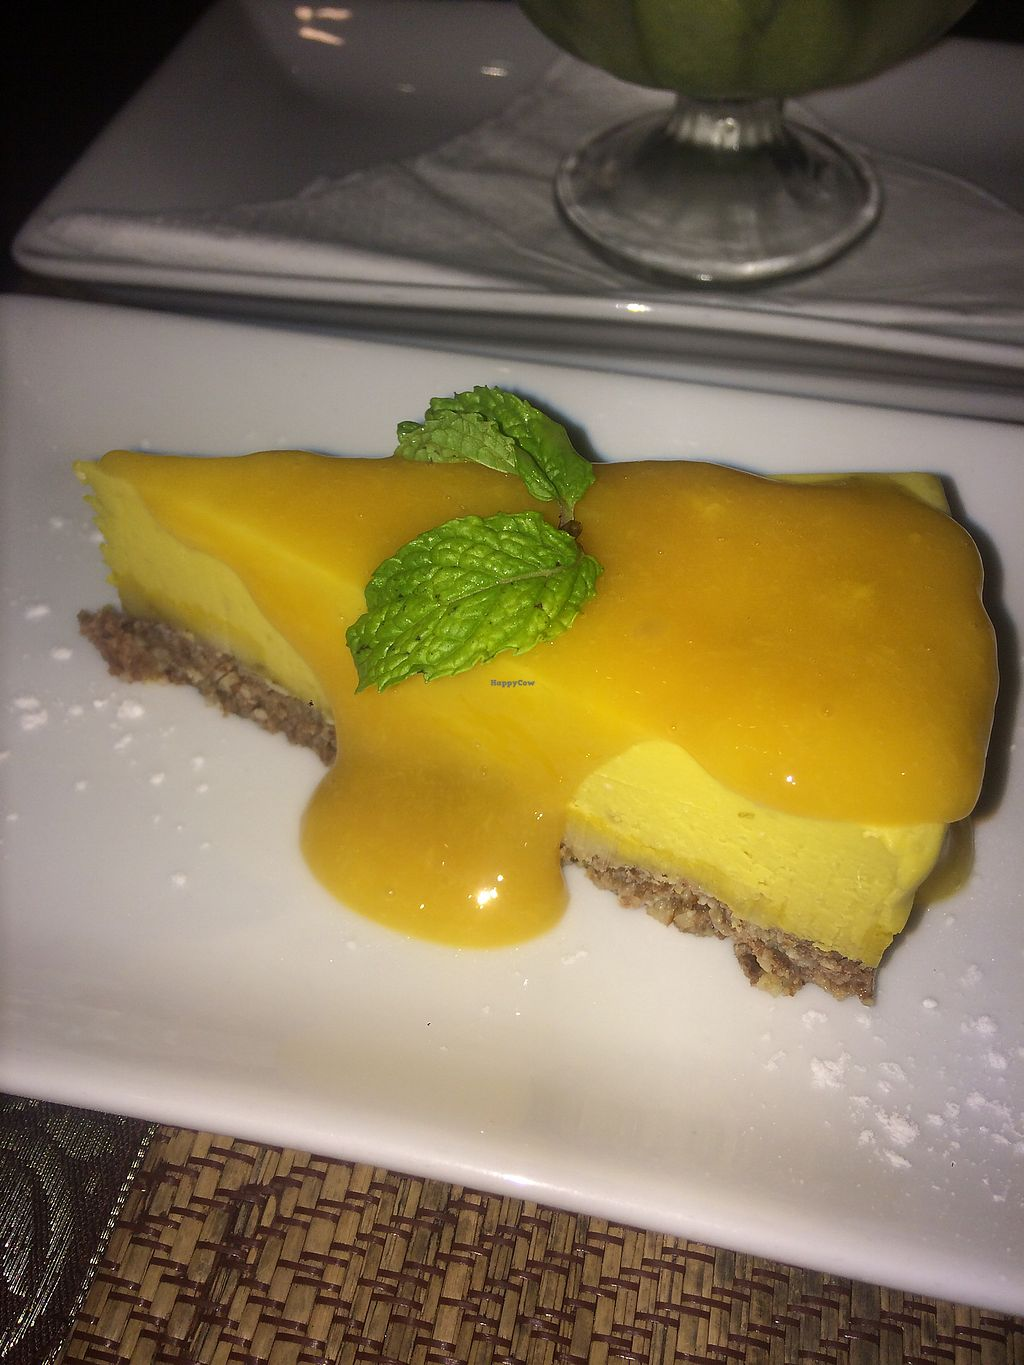 """Photo of Santosa  by <a href=""""/members/profile/yummiee"""">yummiee</a> <br/>raw mango cake <br/> August 29, 2017  - <a href='/contact/abuse/image/46587/298676'>Report</a>"""